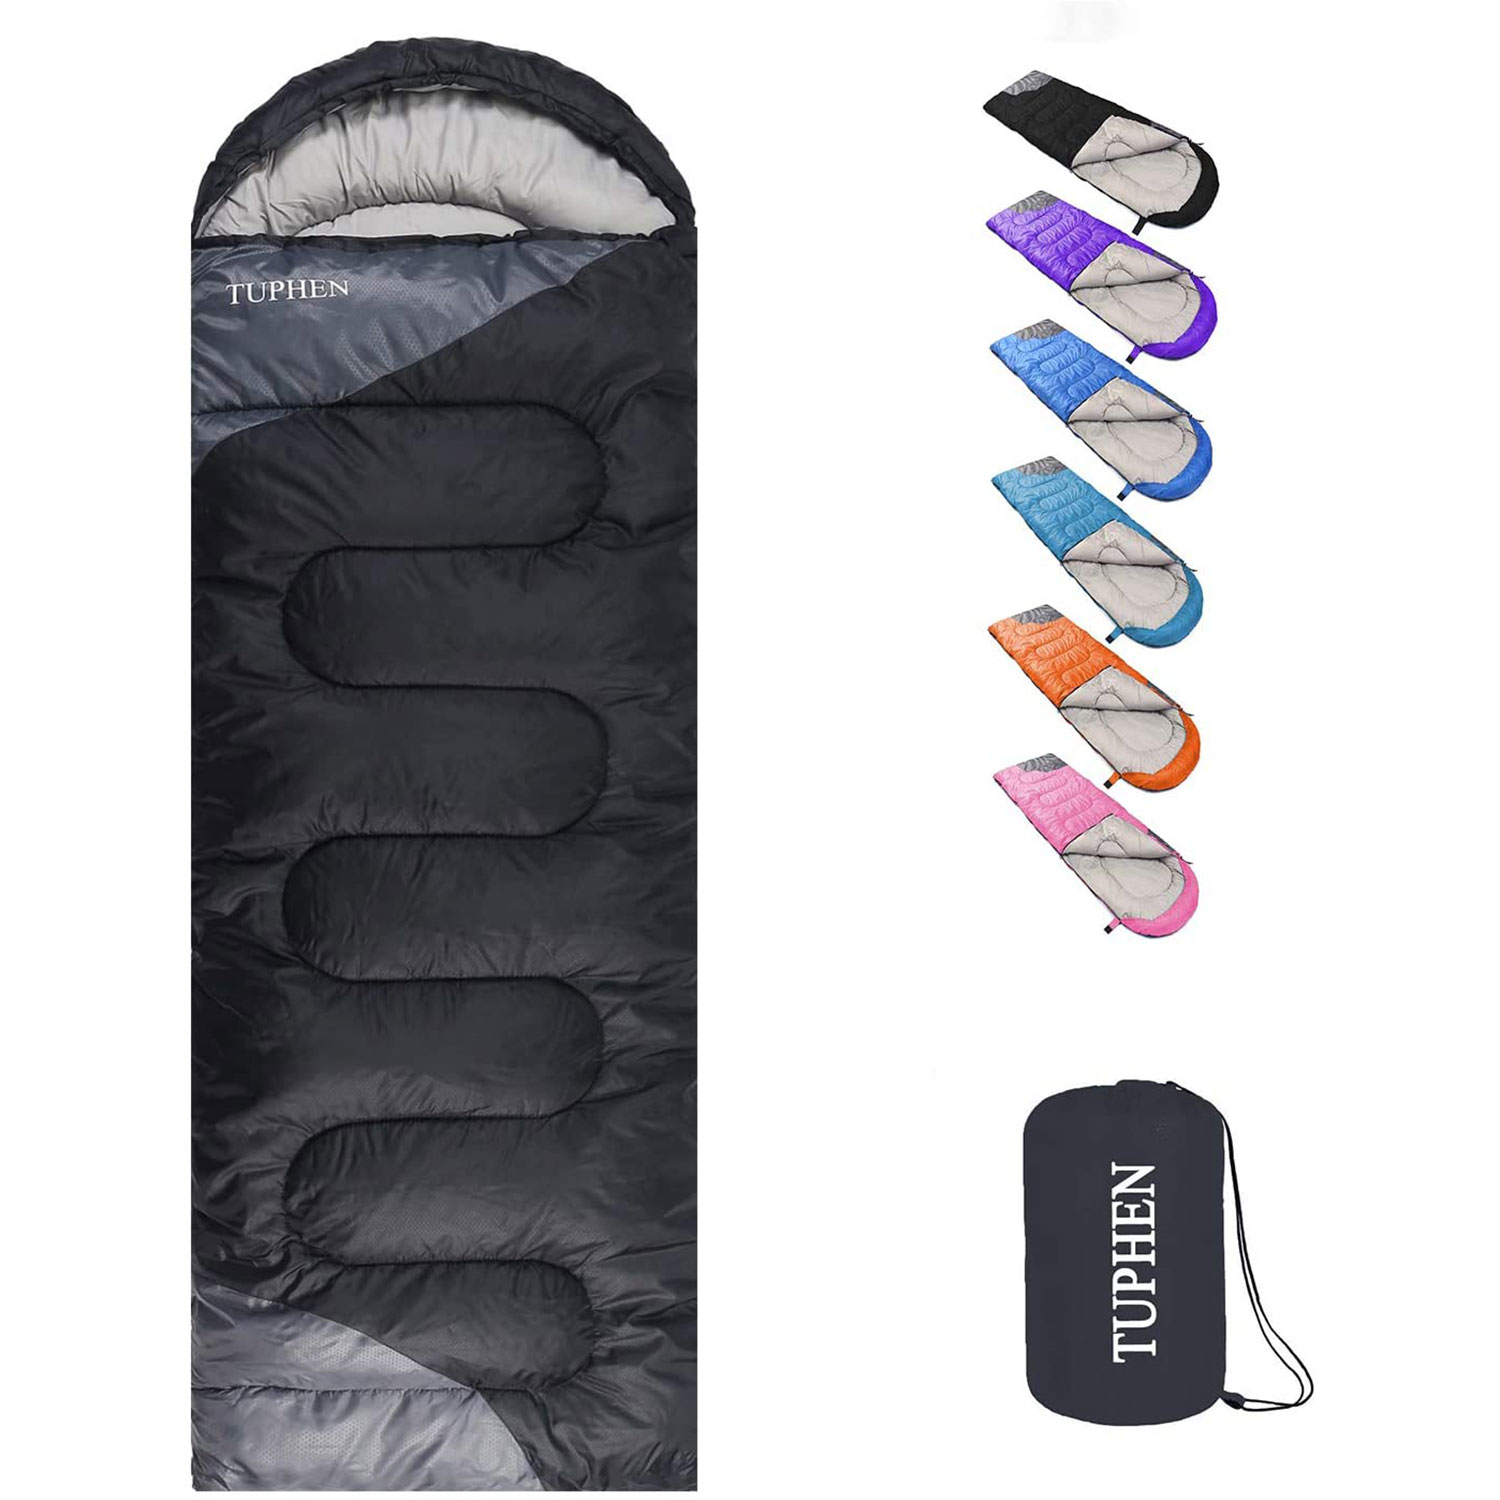 Sleeping Bags for Adults Kids Boys Girls Backpacking Hiking Camping Cotton Liner